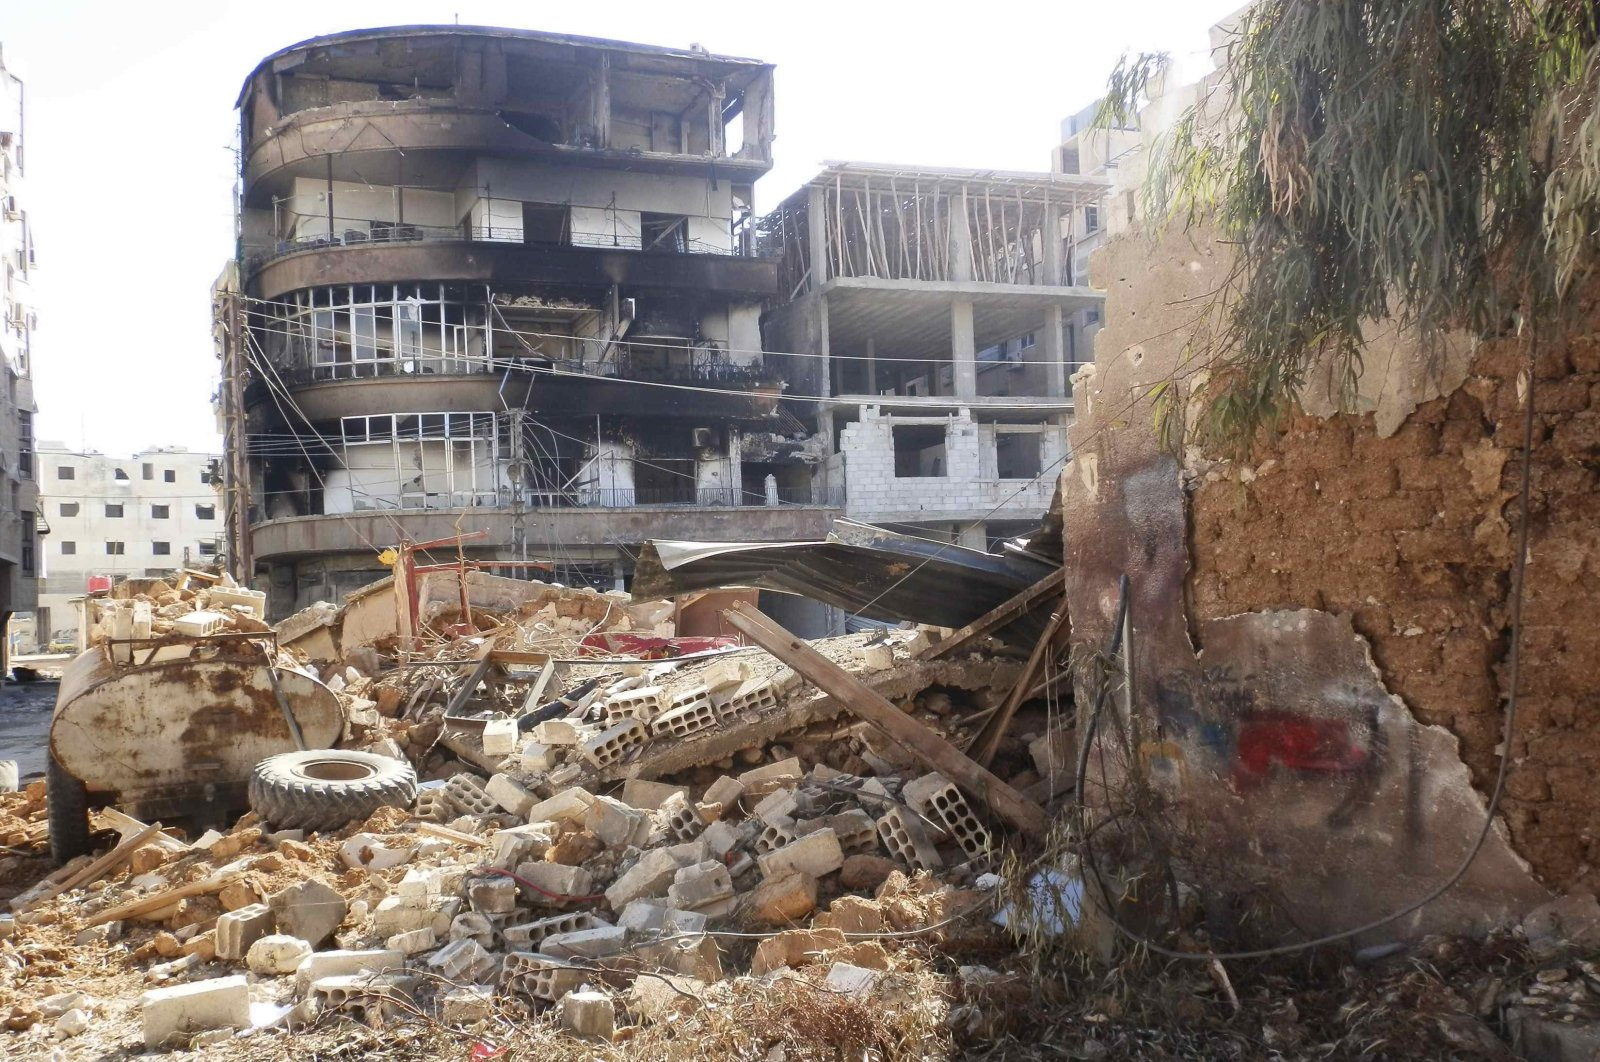 Many buildings were damaged or reduced to rubble after what activists say was shelling by forces loyal to Bashar Assad in Daraya, Syria, Feb. 4, 2013. (REUTERS Photo)